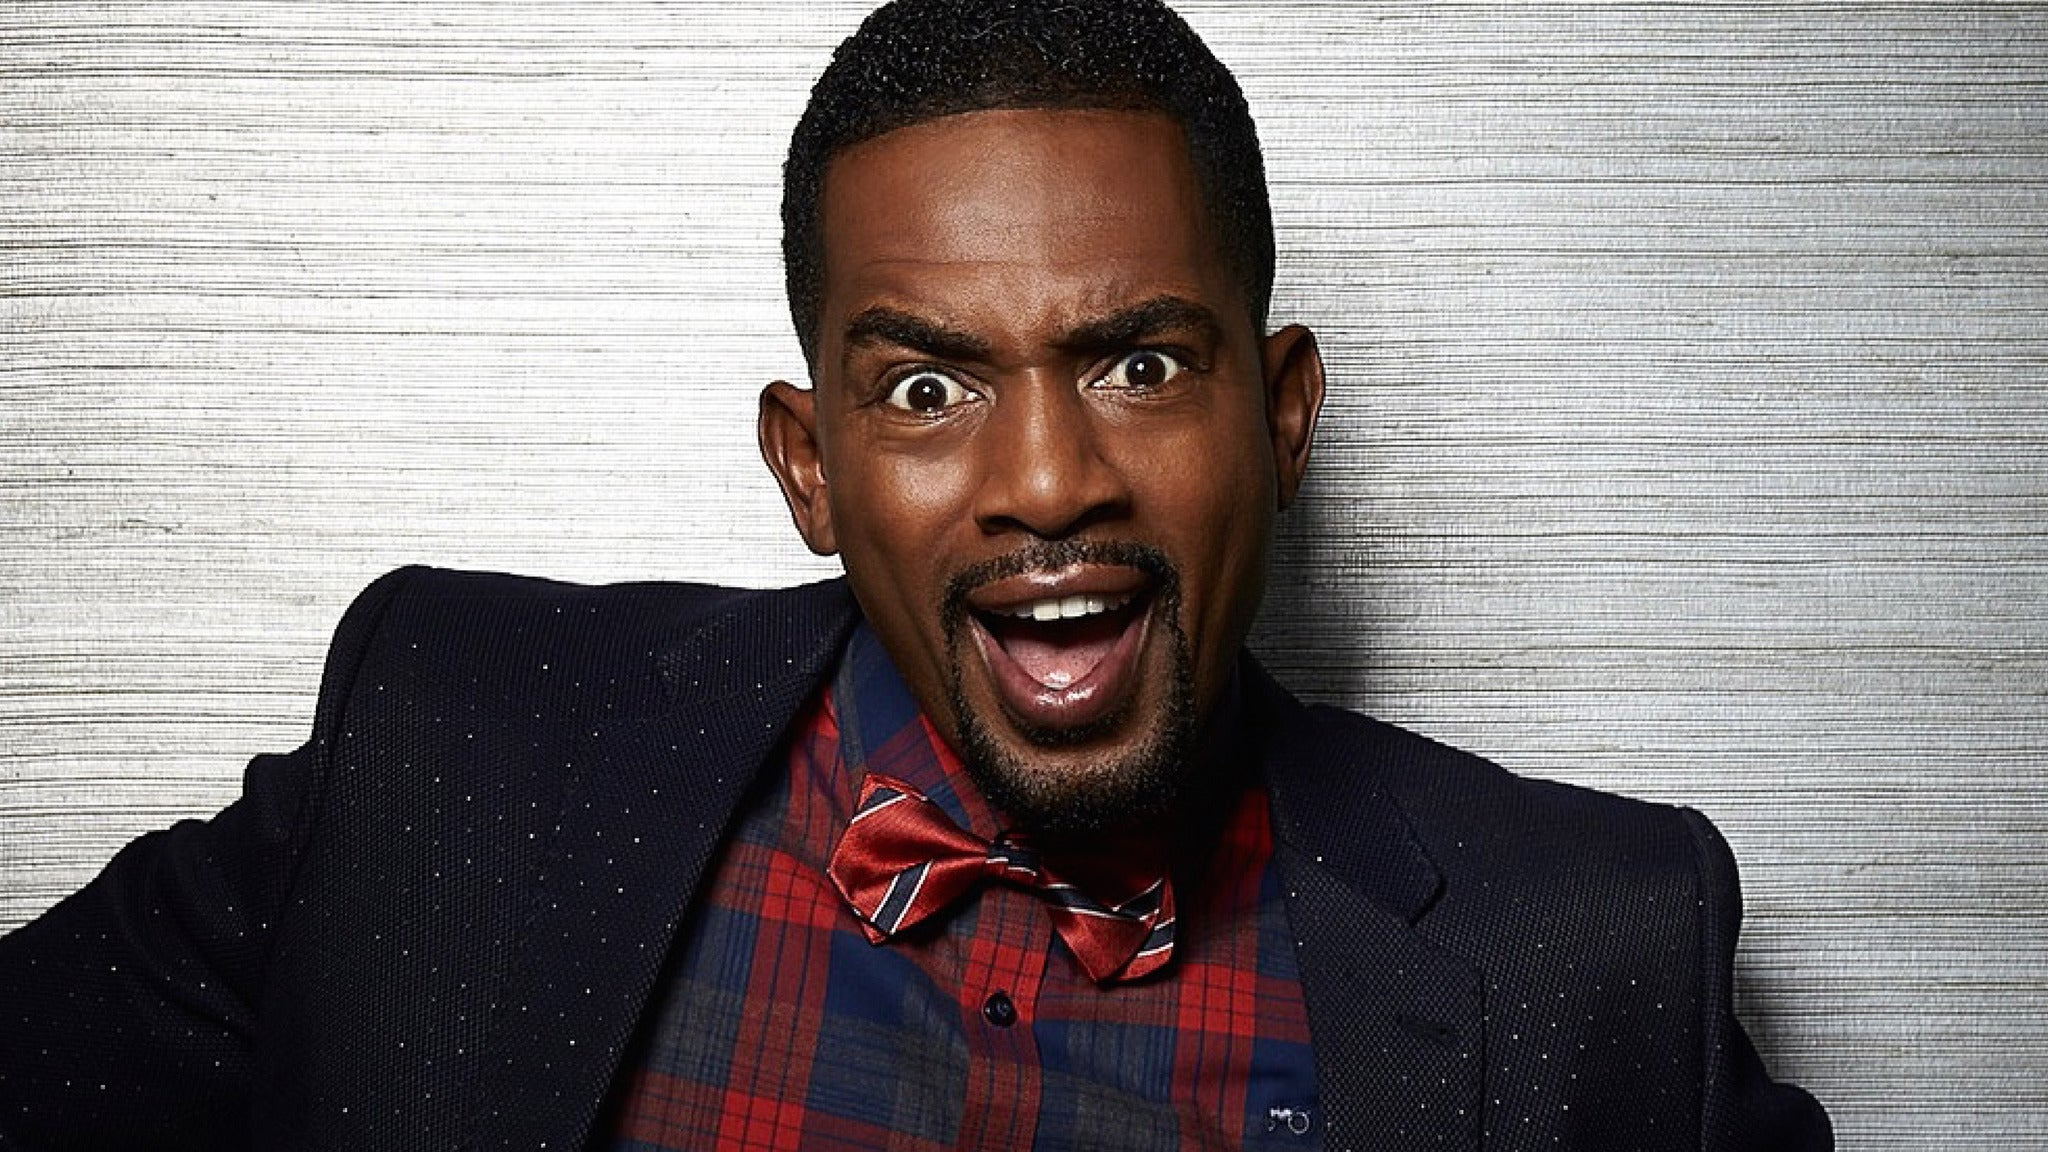 Bill Bellamy at Ontario Improv - Ontario, CA 91764